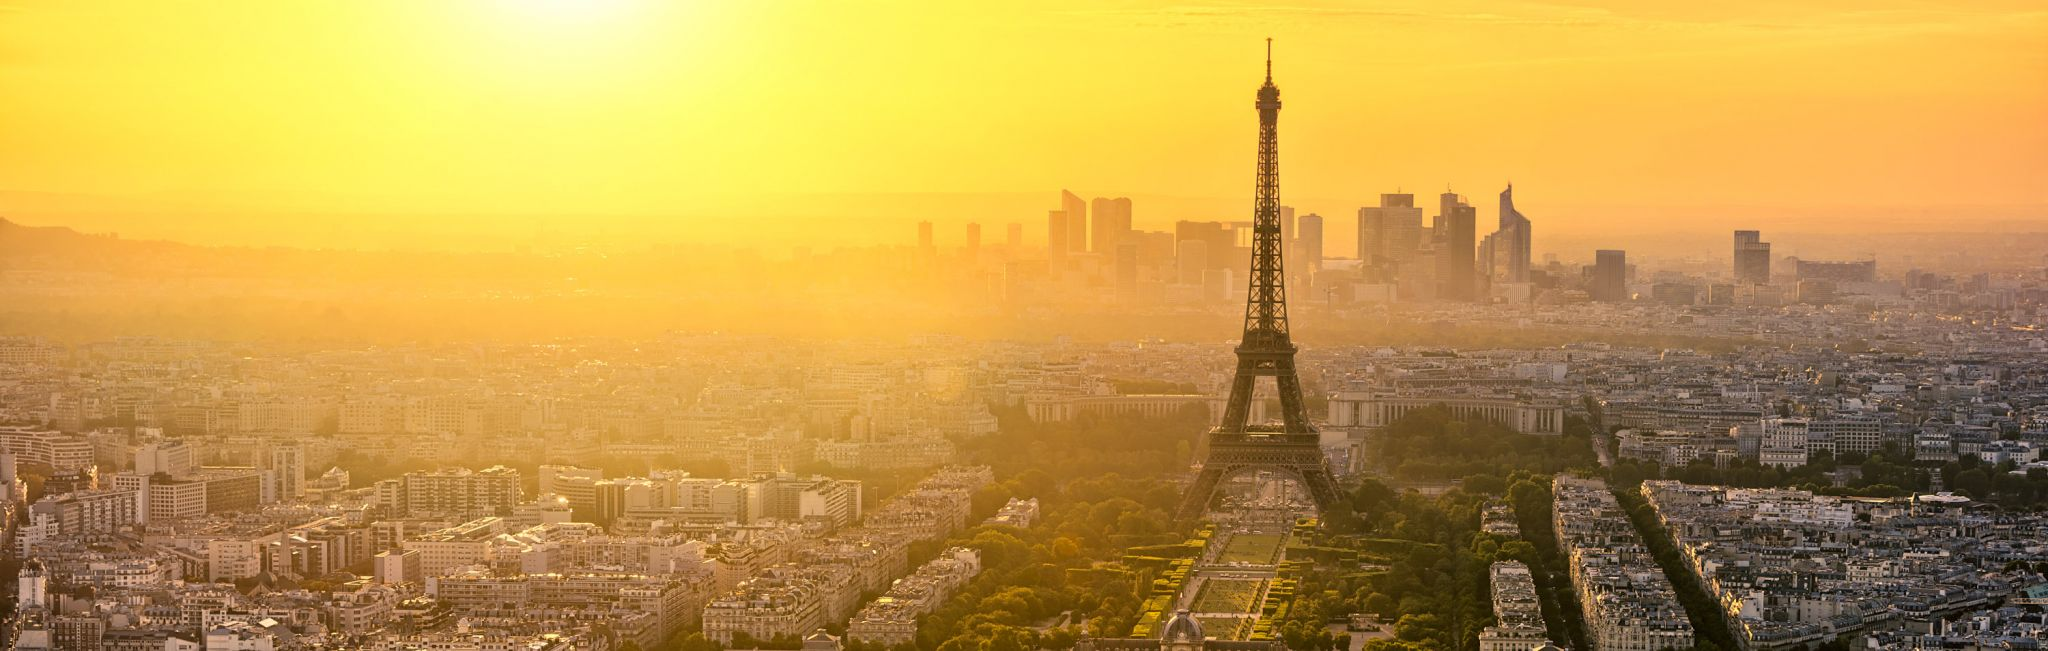 An aerial view of the Eiffel Tower at sunset.